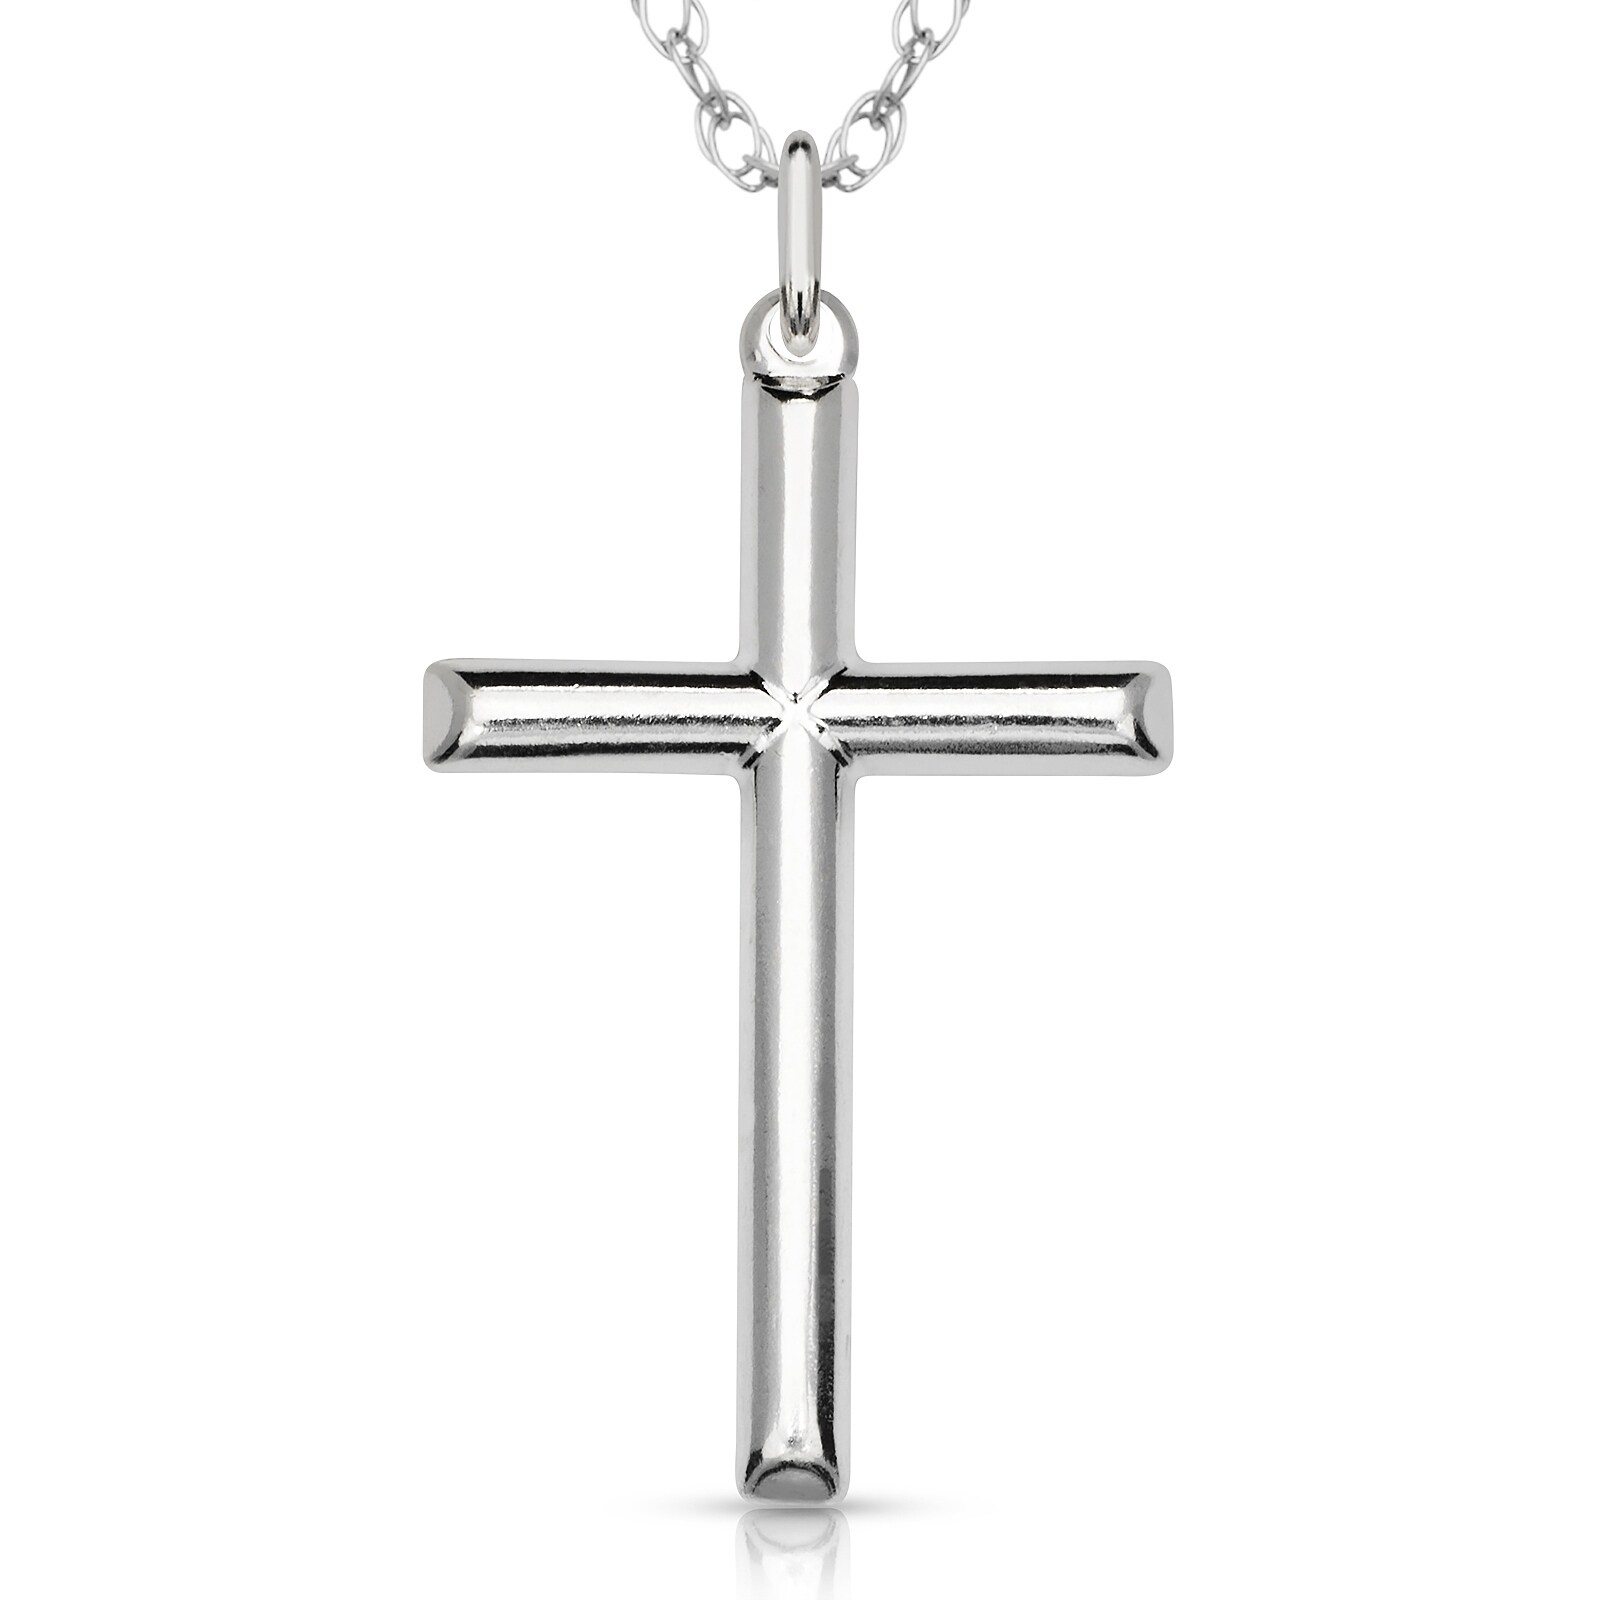 Vintage Silver Rhinestone Cross Necklace Pendant 16 Inch Sterling Chain